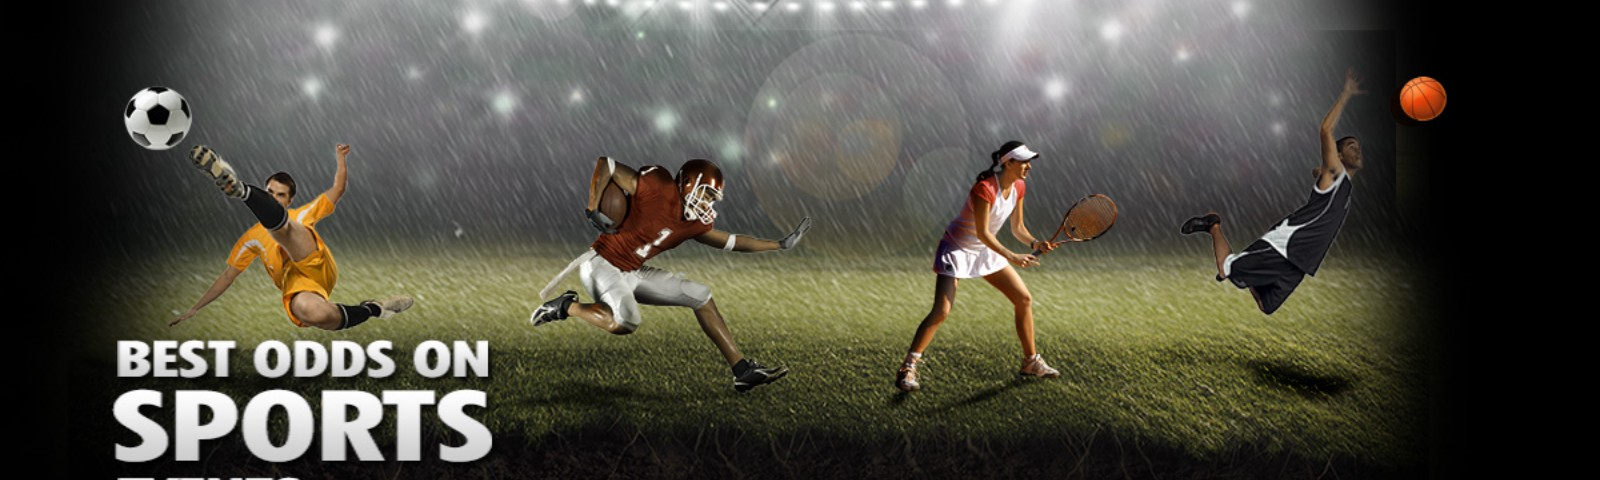 Sports betting API Providers for Cricket, Football, Soccer, Horse Racing